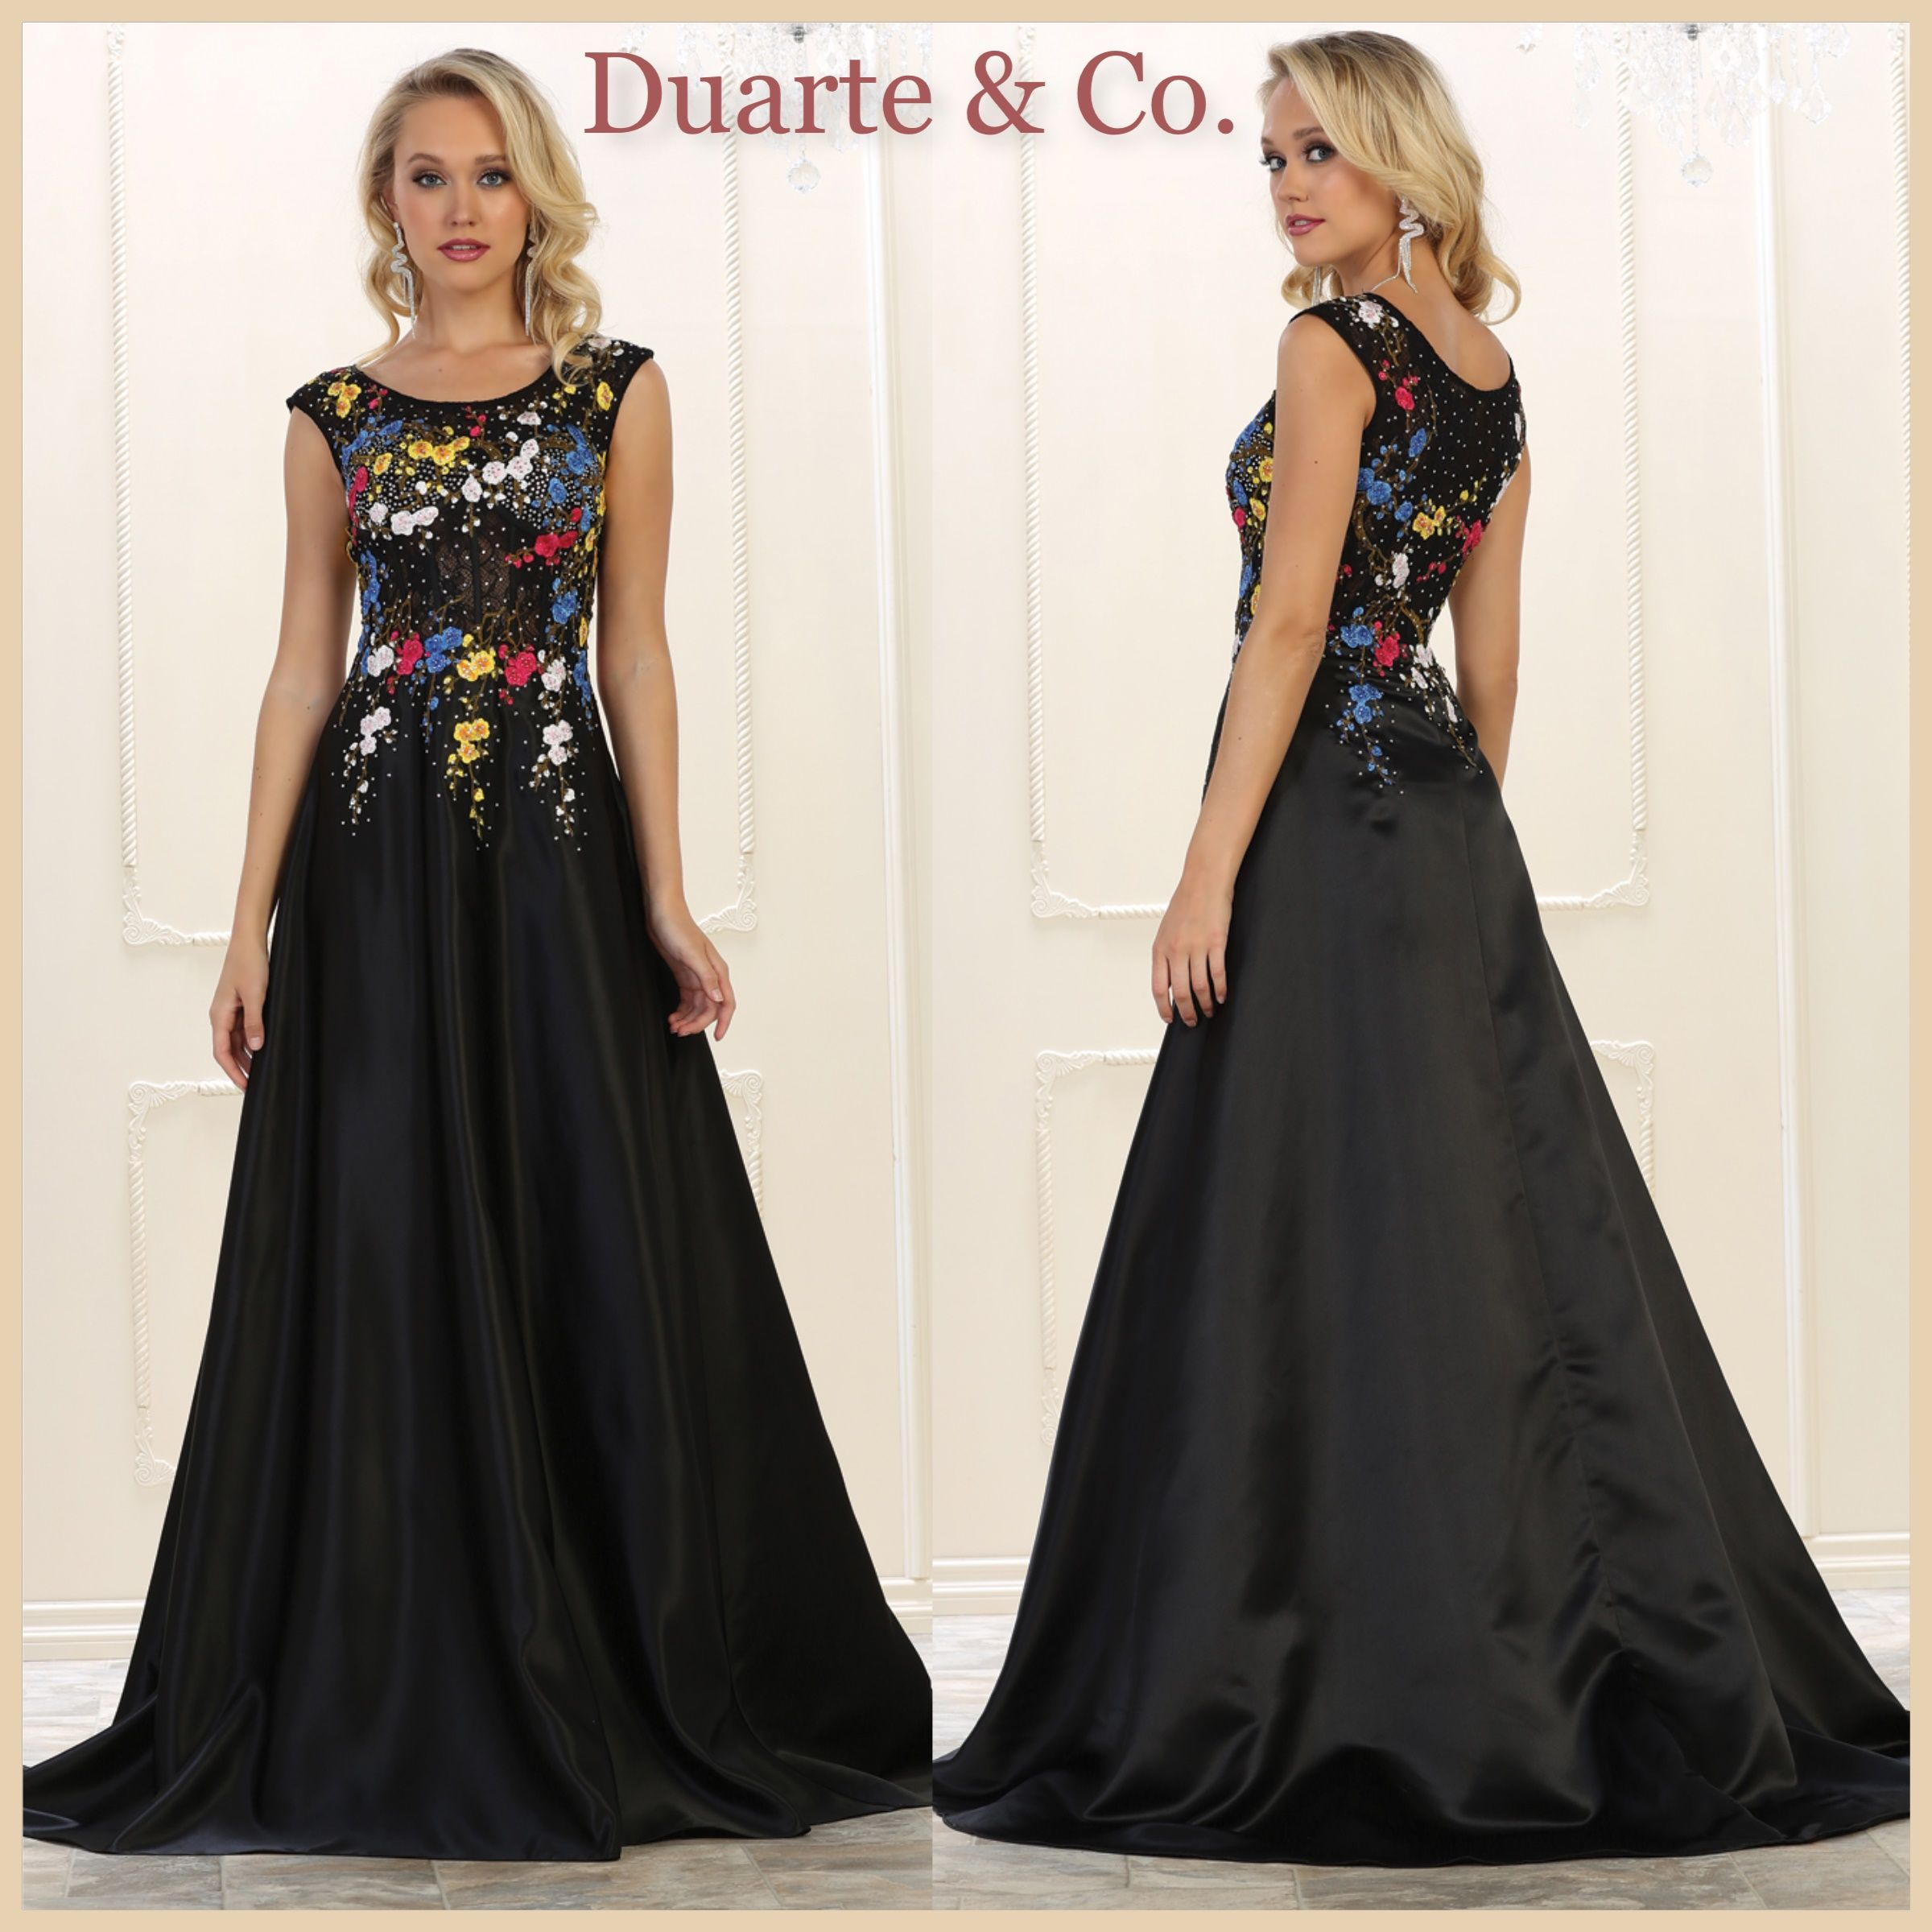 Satin Floral Ball Gown W/Plus Sizes - RQ7587 | Prom & Party Dresses ...